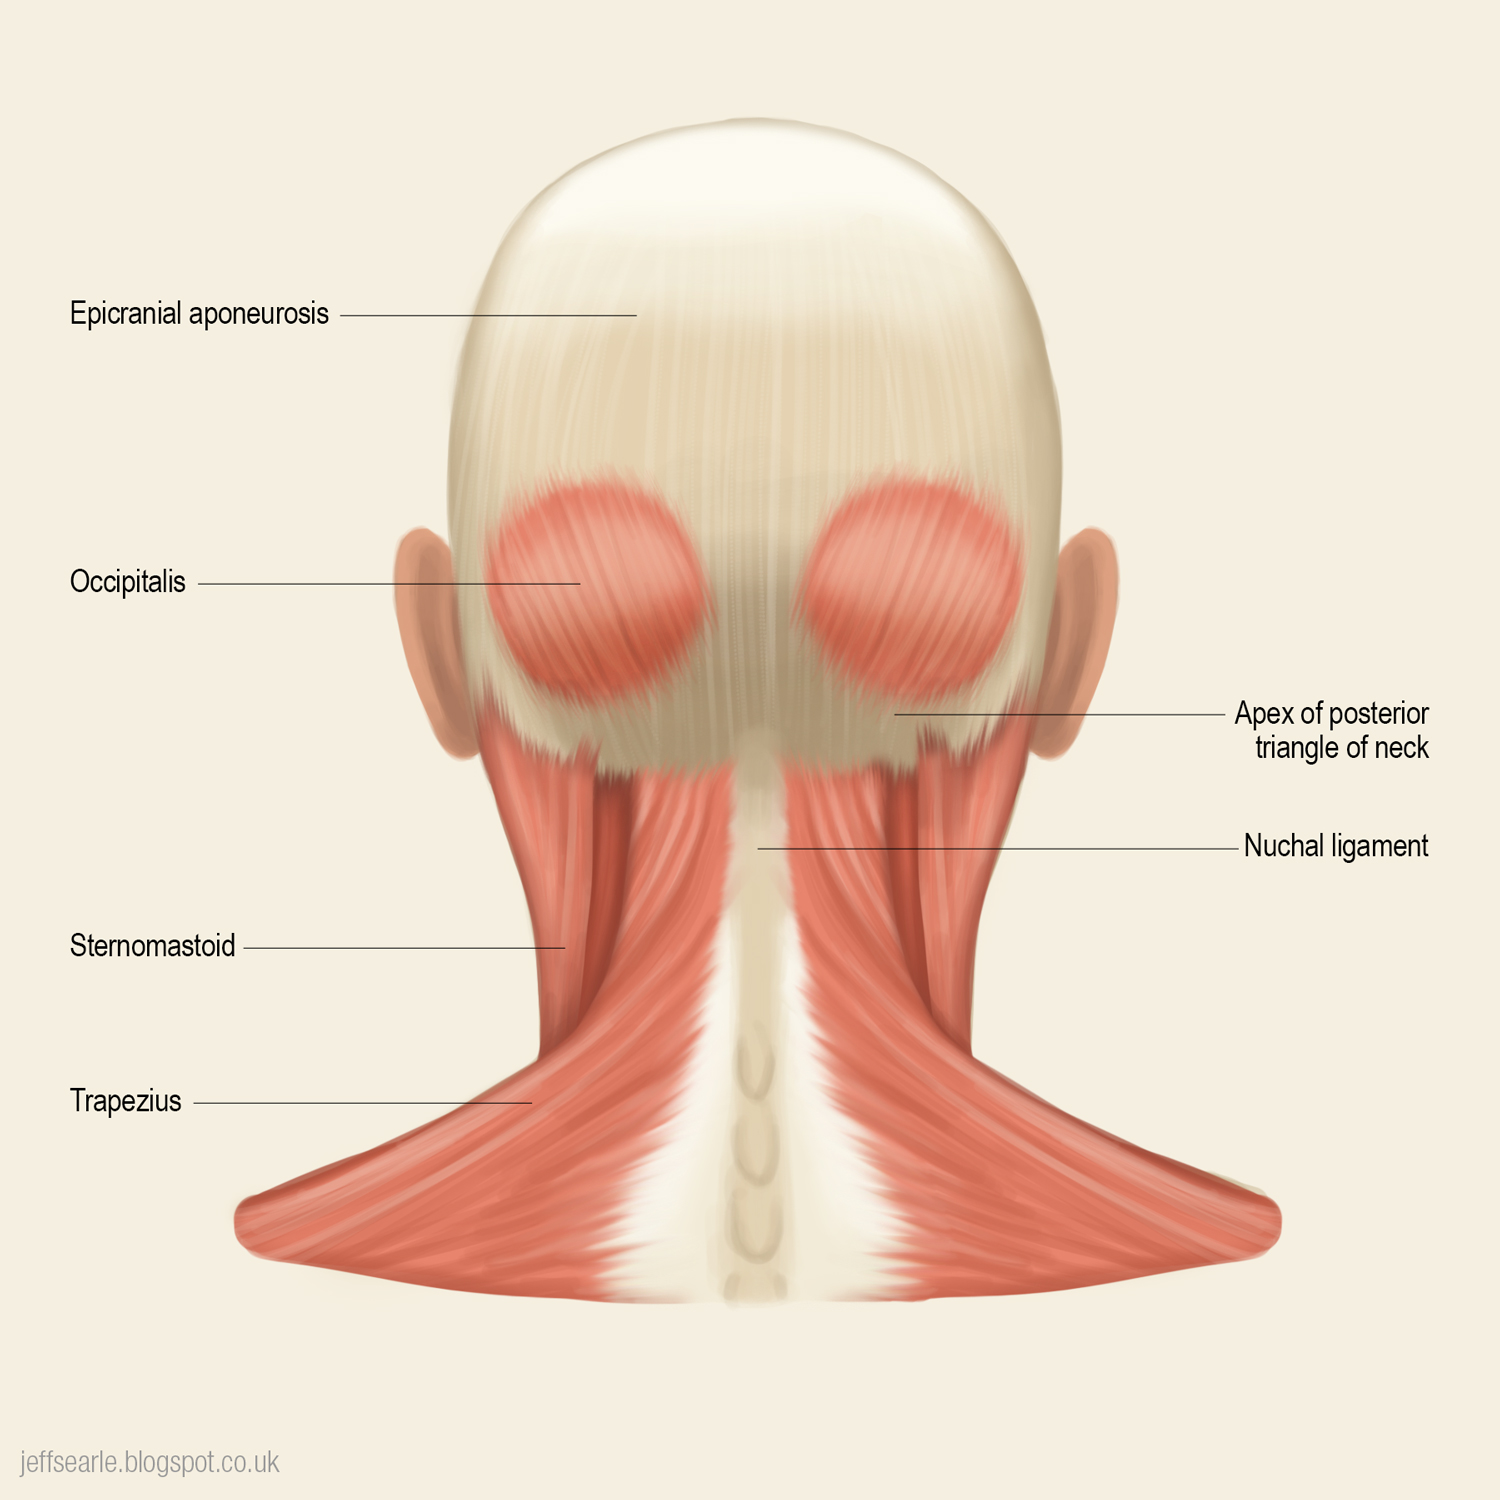 Anatomy of back of head and neck